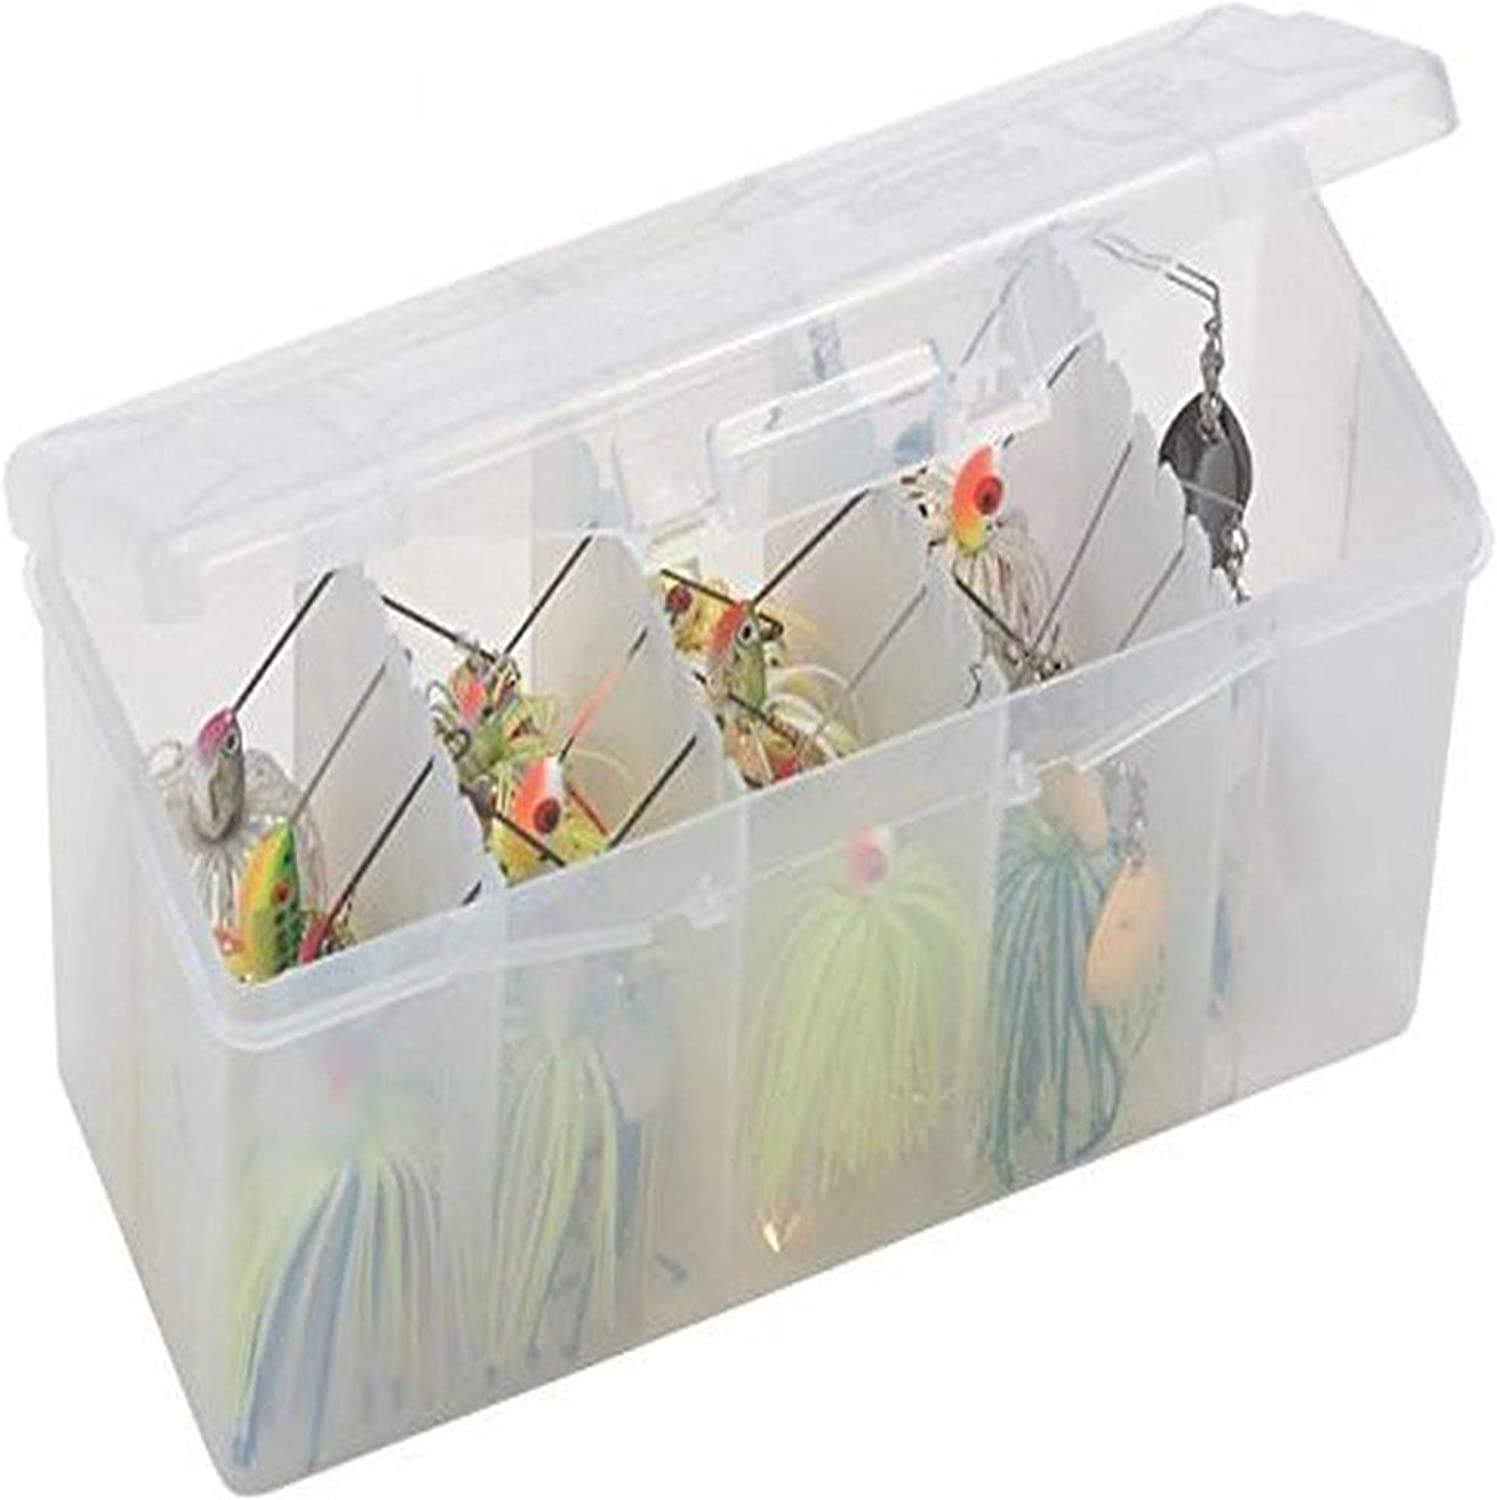 Plano 5 Slot Lure Container With Assorted Lures From Wigstons Lures